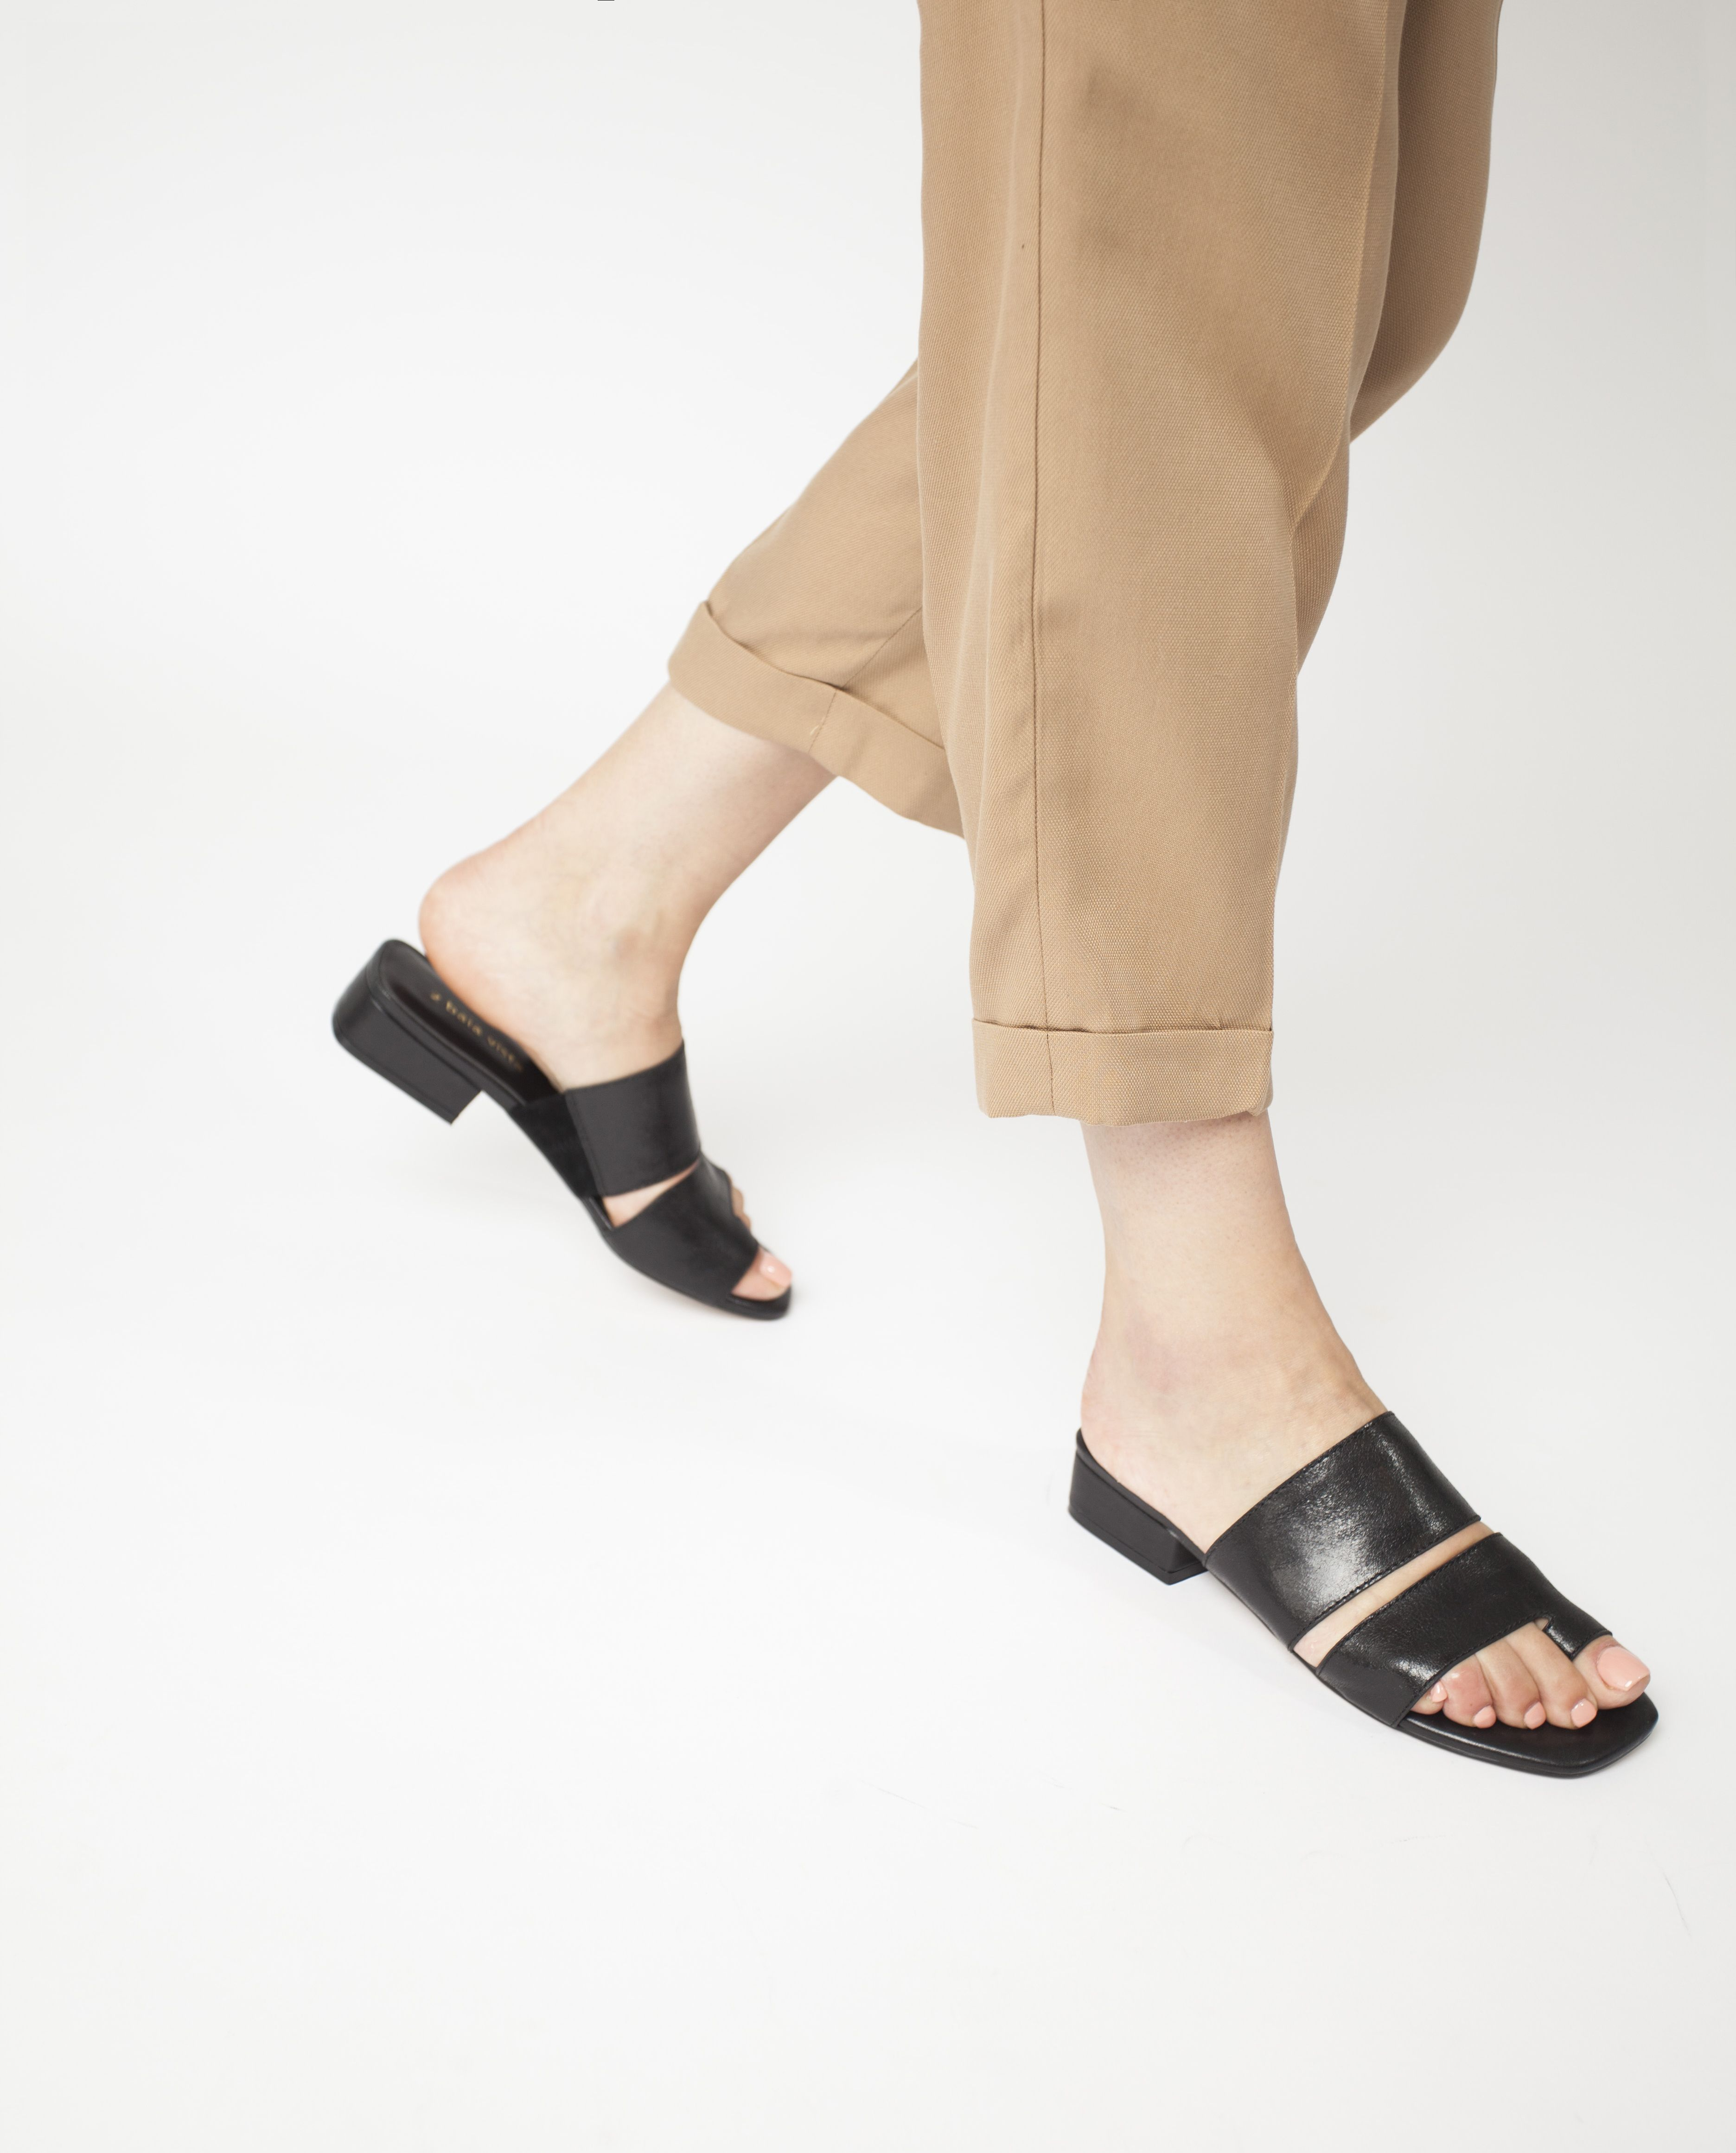 A Black Leather Sandal By 2 Baia Vista The Valencia Features A Multi Strap Upper A Toe Loop A Block Heel And A Leather Sandals Black Leather Sandals Heels